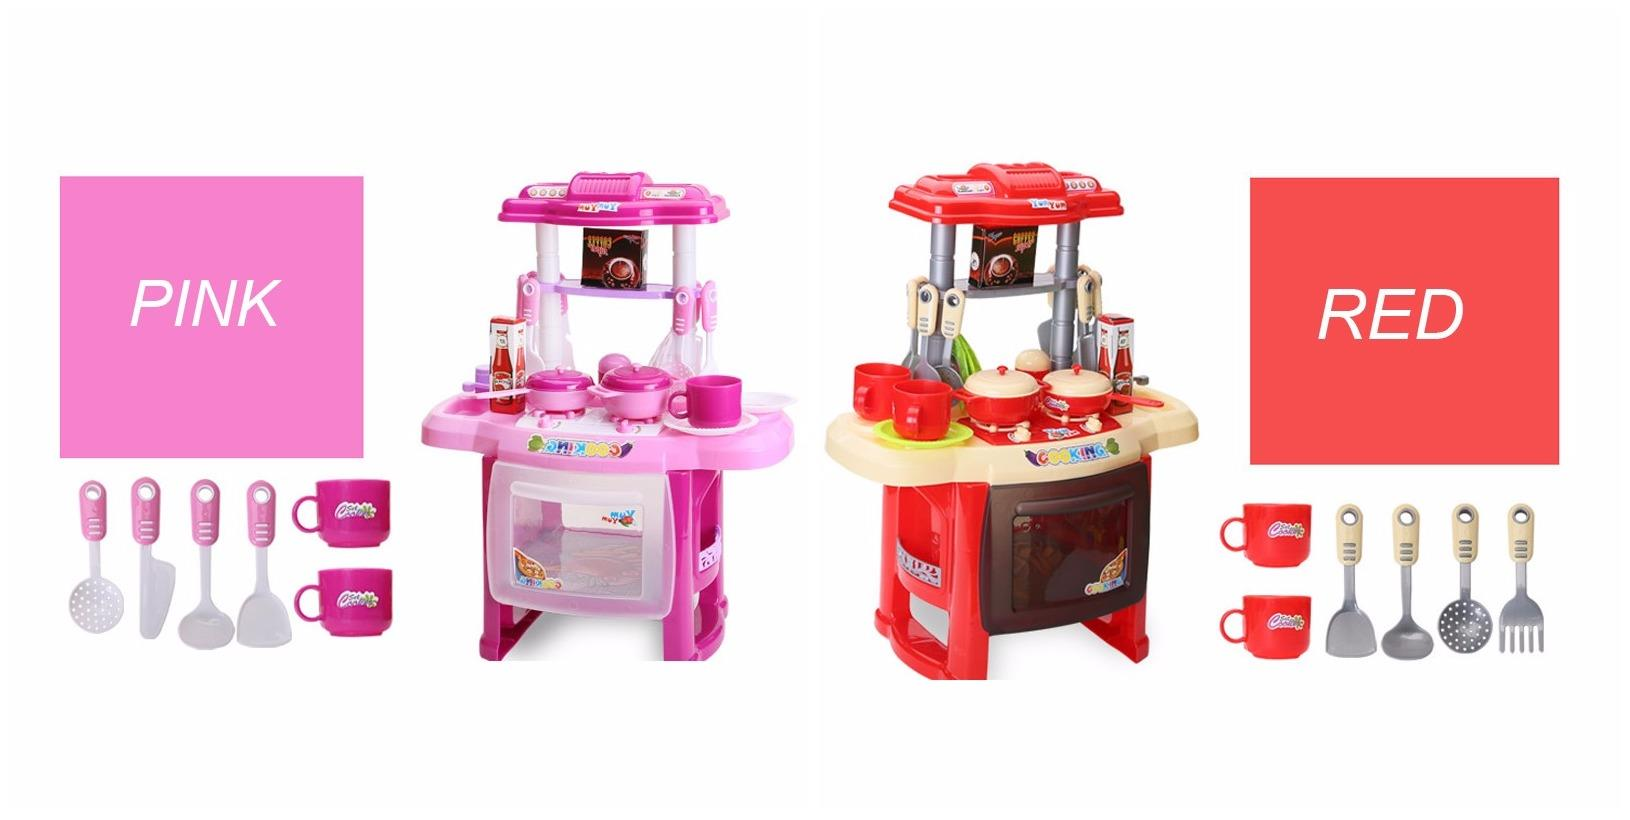 Baby kitchen set toy end 4 23 2016 7 00 pm for Kitchen set for babies